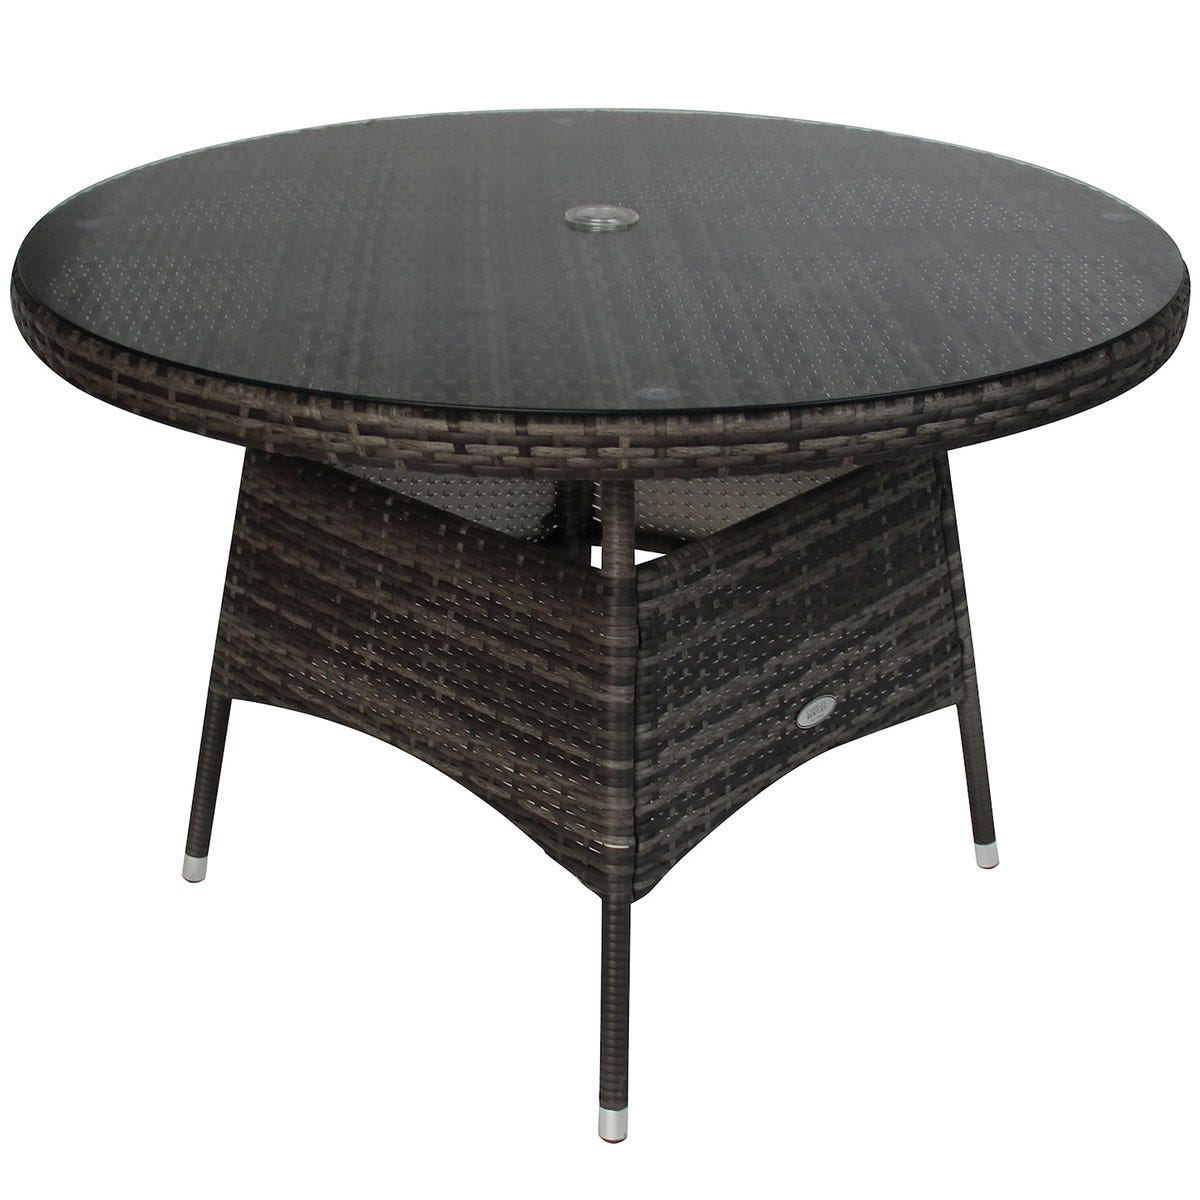 Charles Bentley Rattan 4 Seater Dining Table - Grey